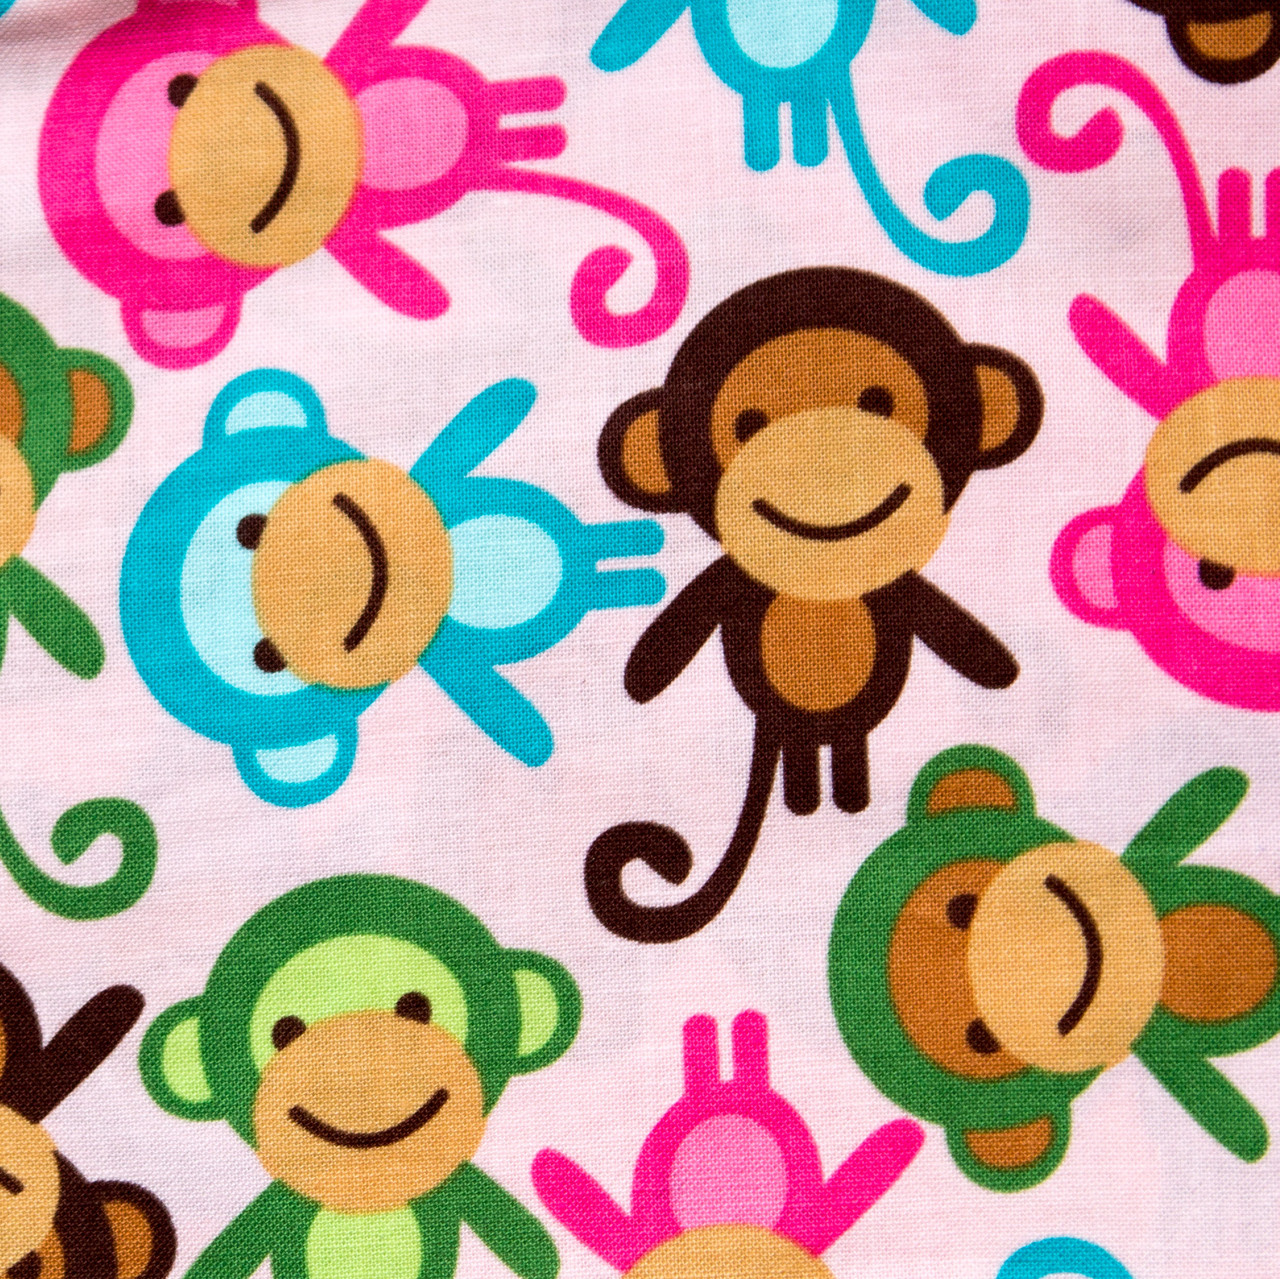 Monkey See Monkey Do print